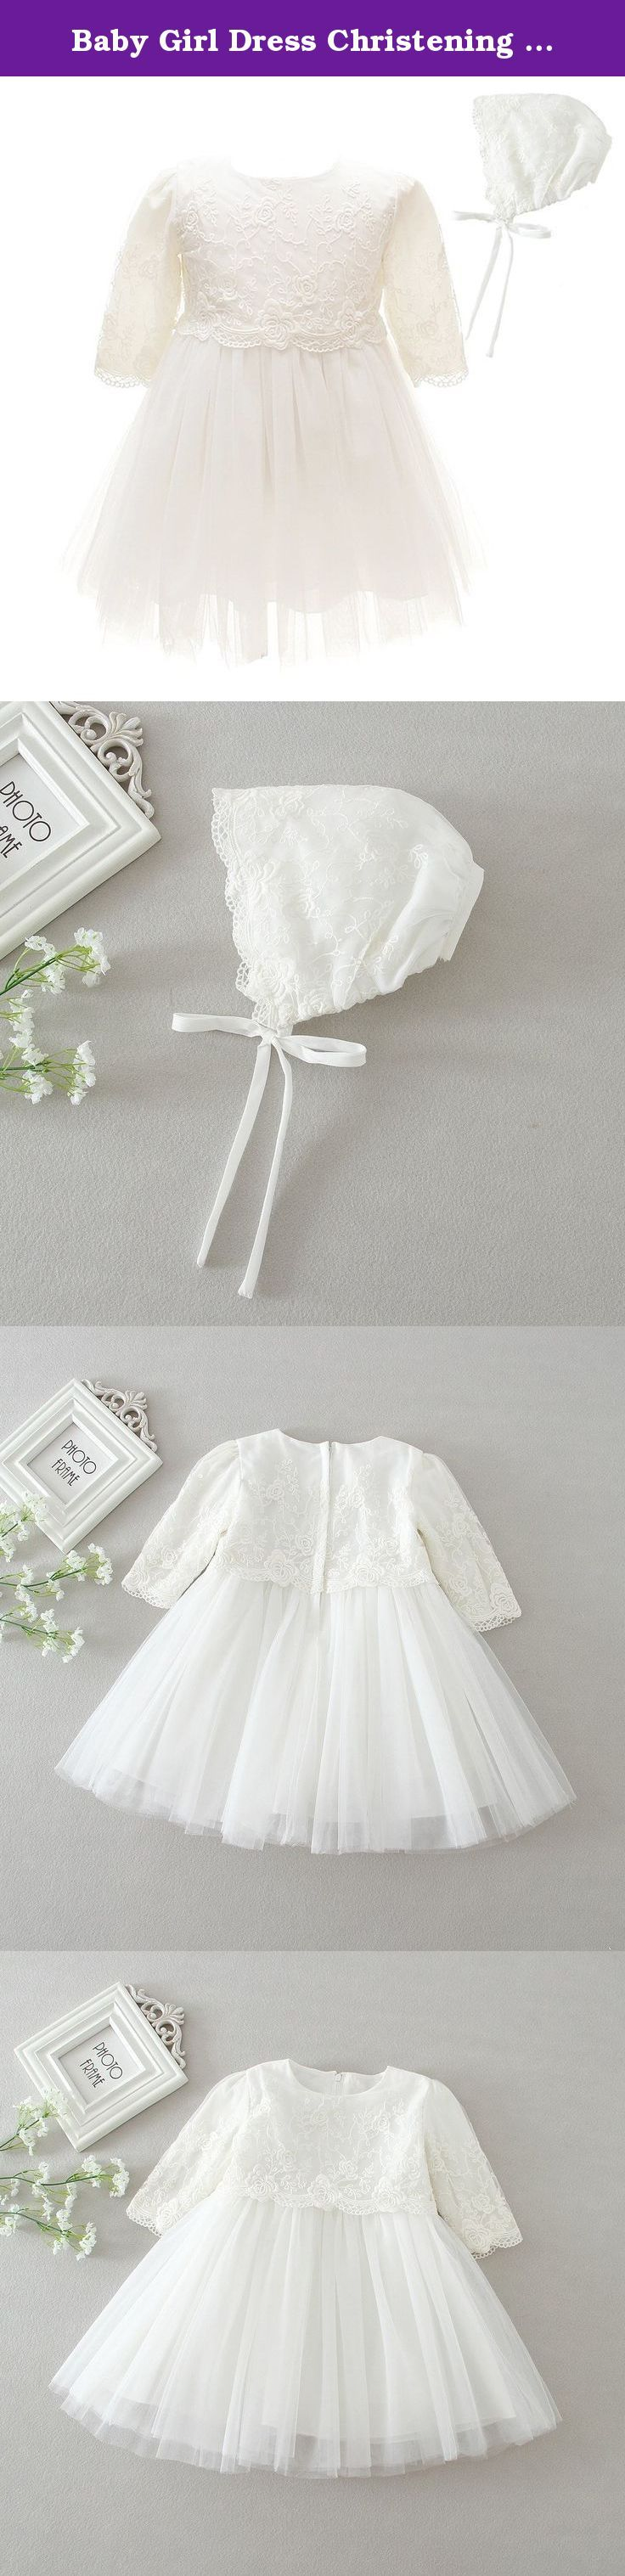 """Baby Girl Dress Christening Baptism Gowns Long Sleeve Thicken Dress, White, 18M. This beautiful dress is made of high quality material,which is handmade beautiful floral dress.Wearing it,you can feel like yourself look like one princess. Please check the size chart on the amazon carefully.If there is any question,please feel free to contact with us. Size 3M/0-5Month: Bust 19.7""""/50cm,Waist 19.7""""/50cm, Long 15.4""""/39cm Size 6M/5-10Month: Bust 20.5""""/52cm, Waist 20.5""""/52cm, Long 16.5""""/42cm…"""